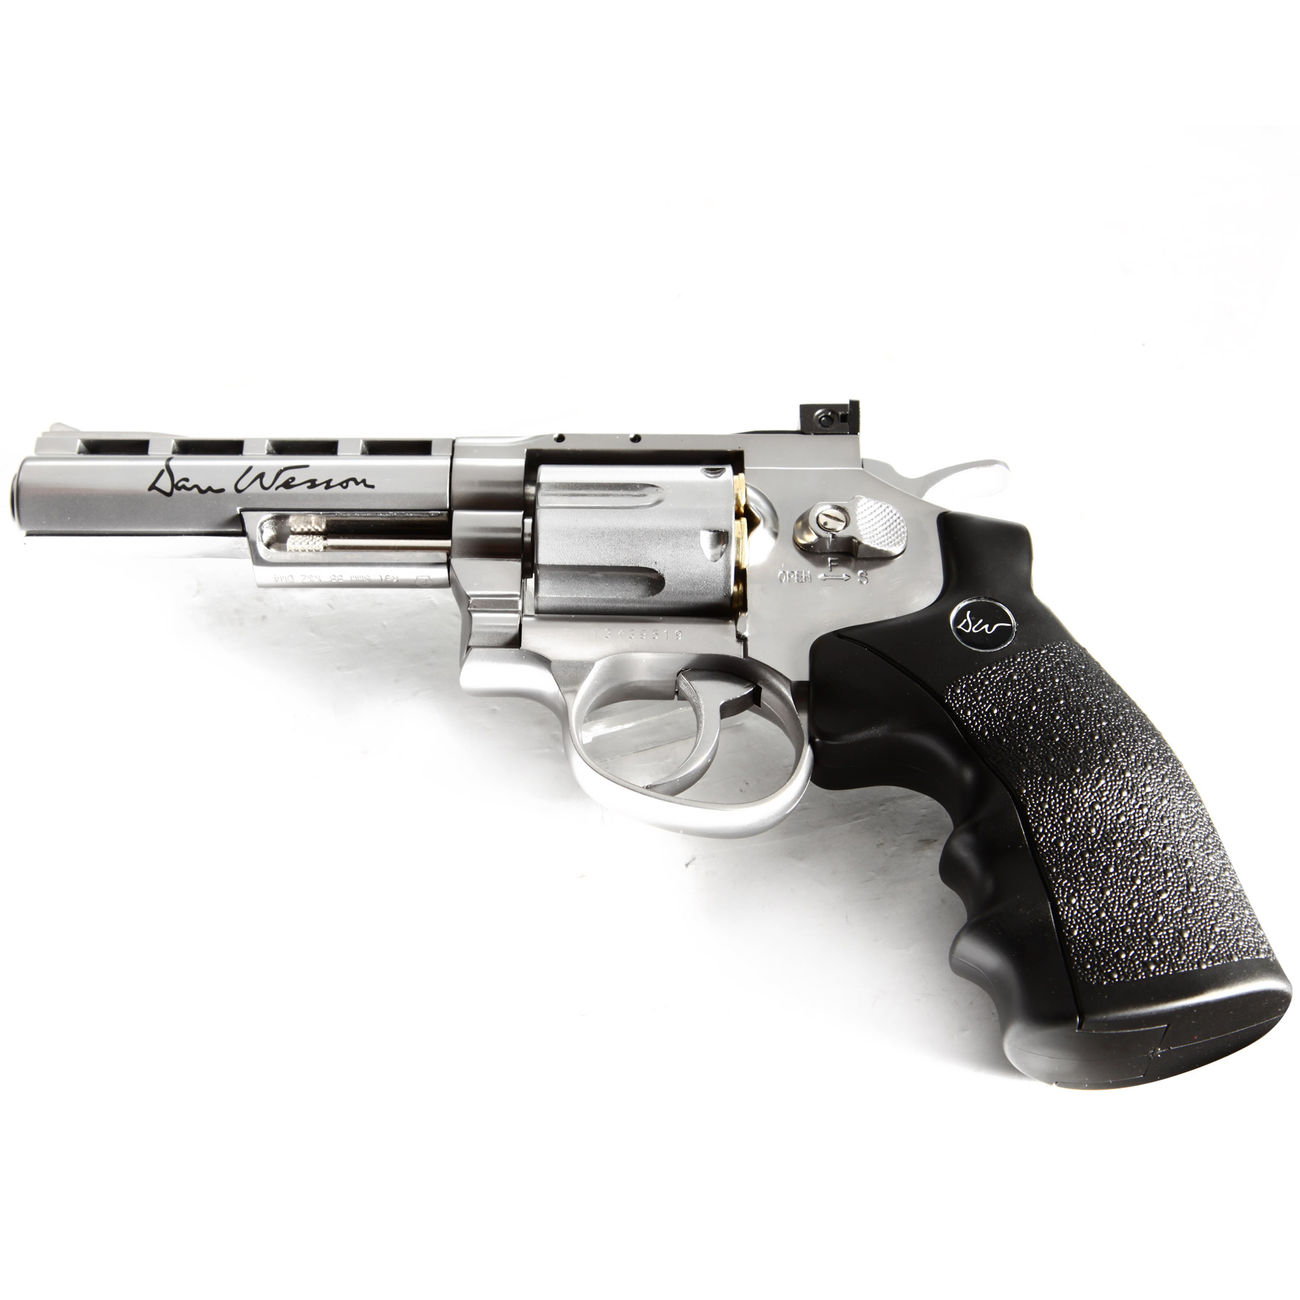 ASG Dan Wesson 4 Zoll 6mm BB CO2 Softair Revolver chrom 4